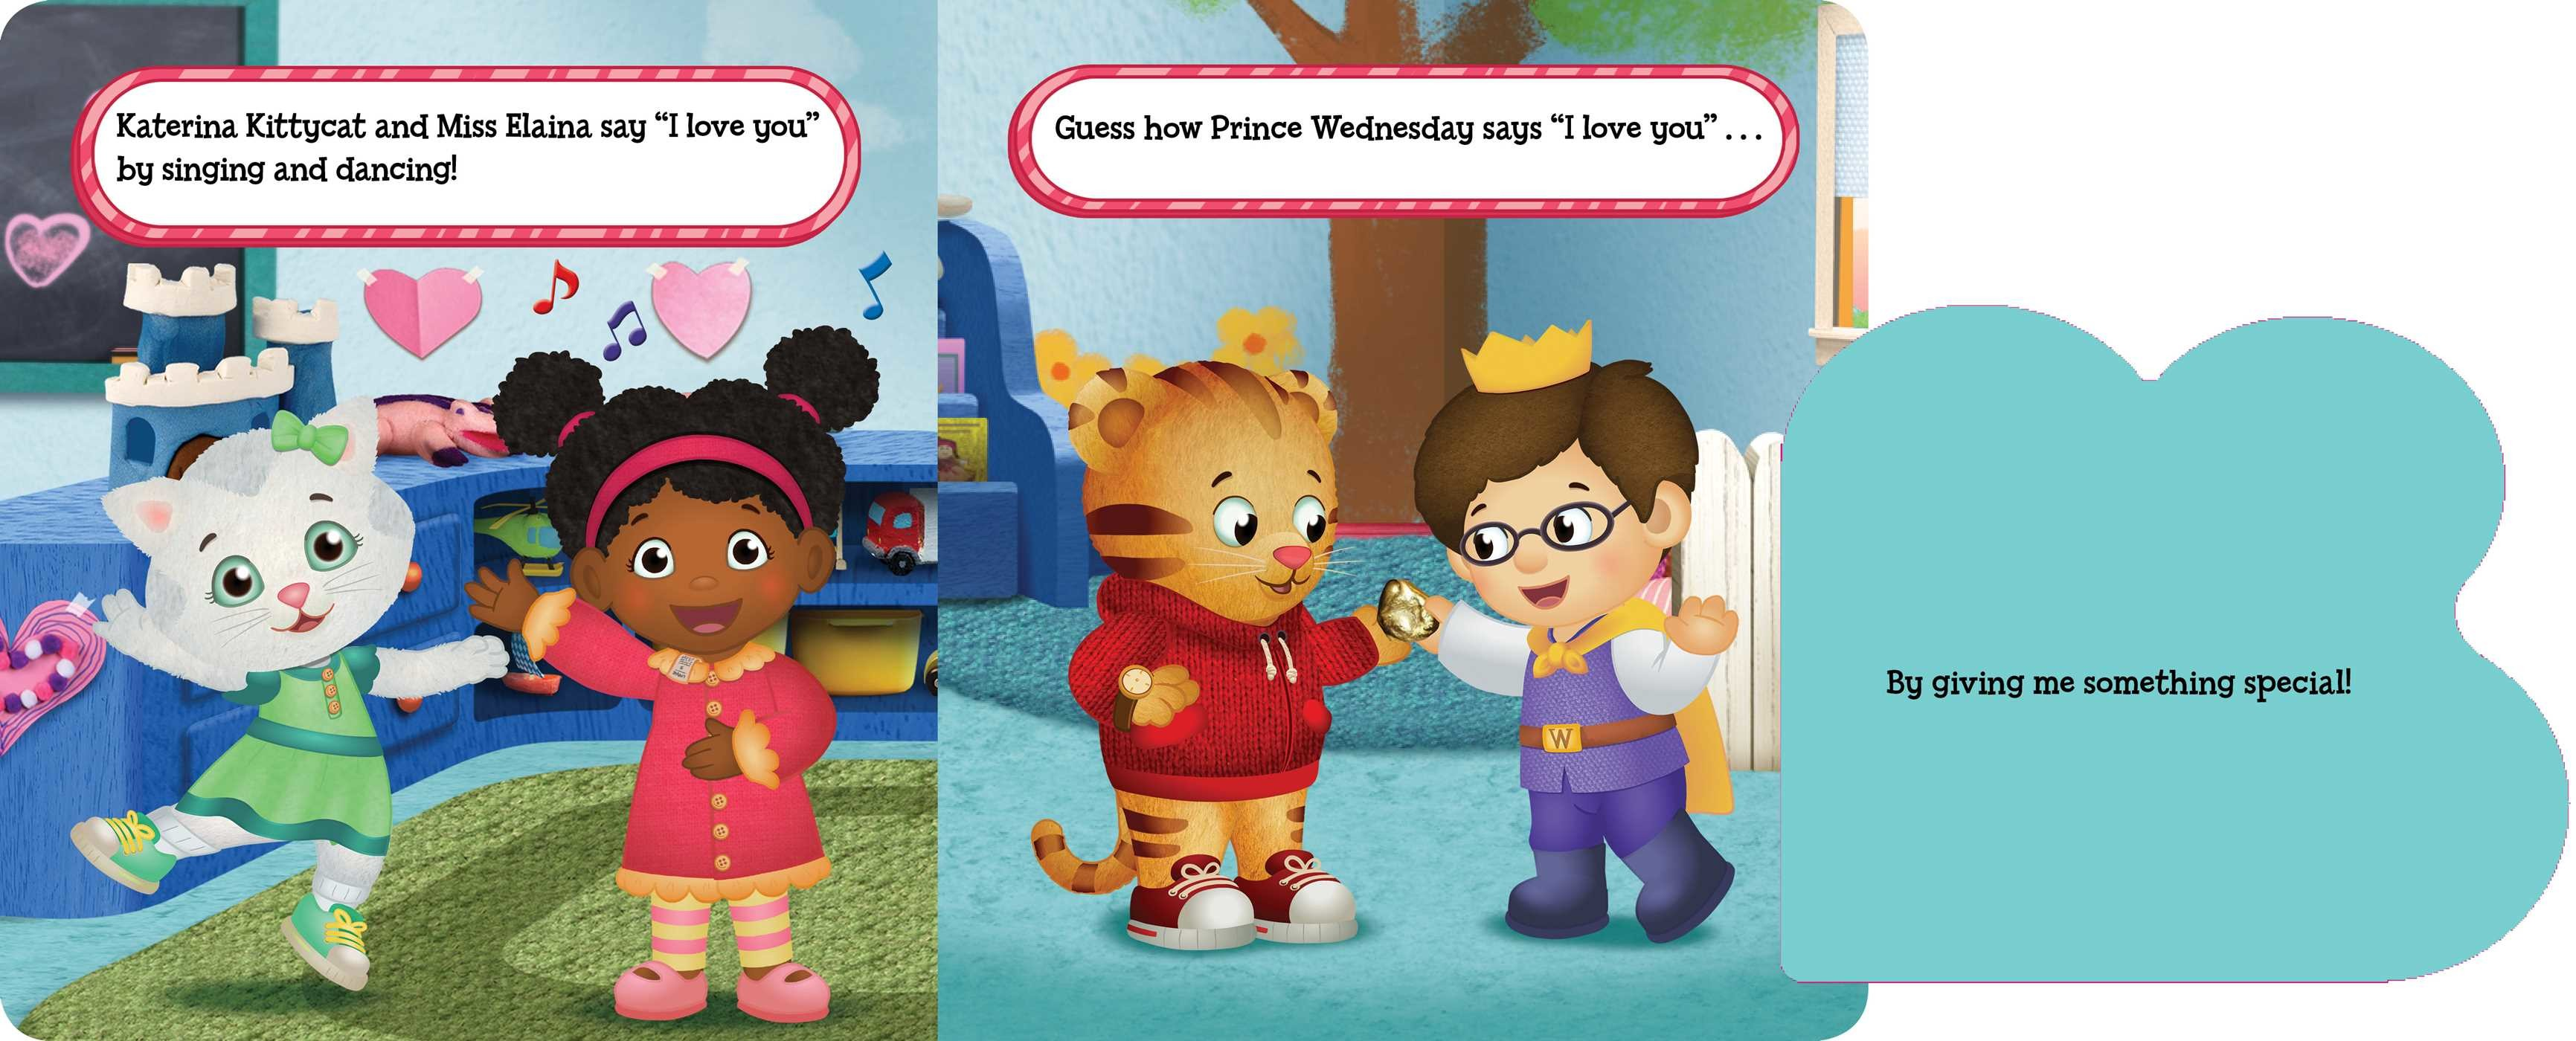 Happy Love Day, Daniel Tiger! | Book by Becky Friedman, Jason ...